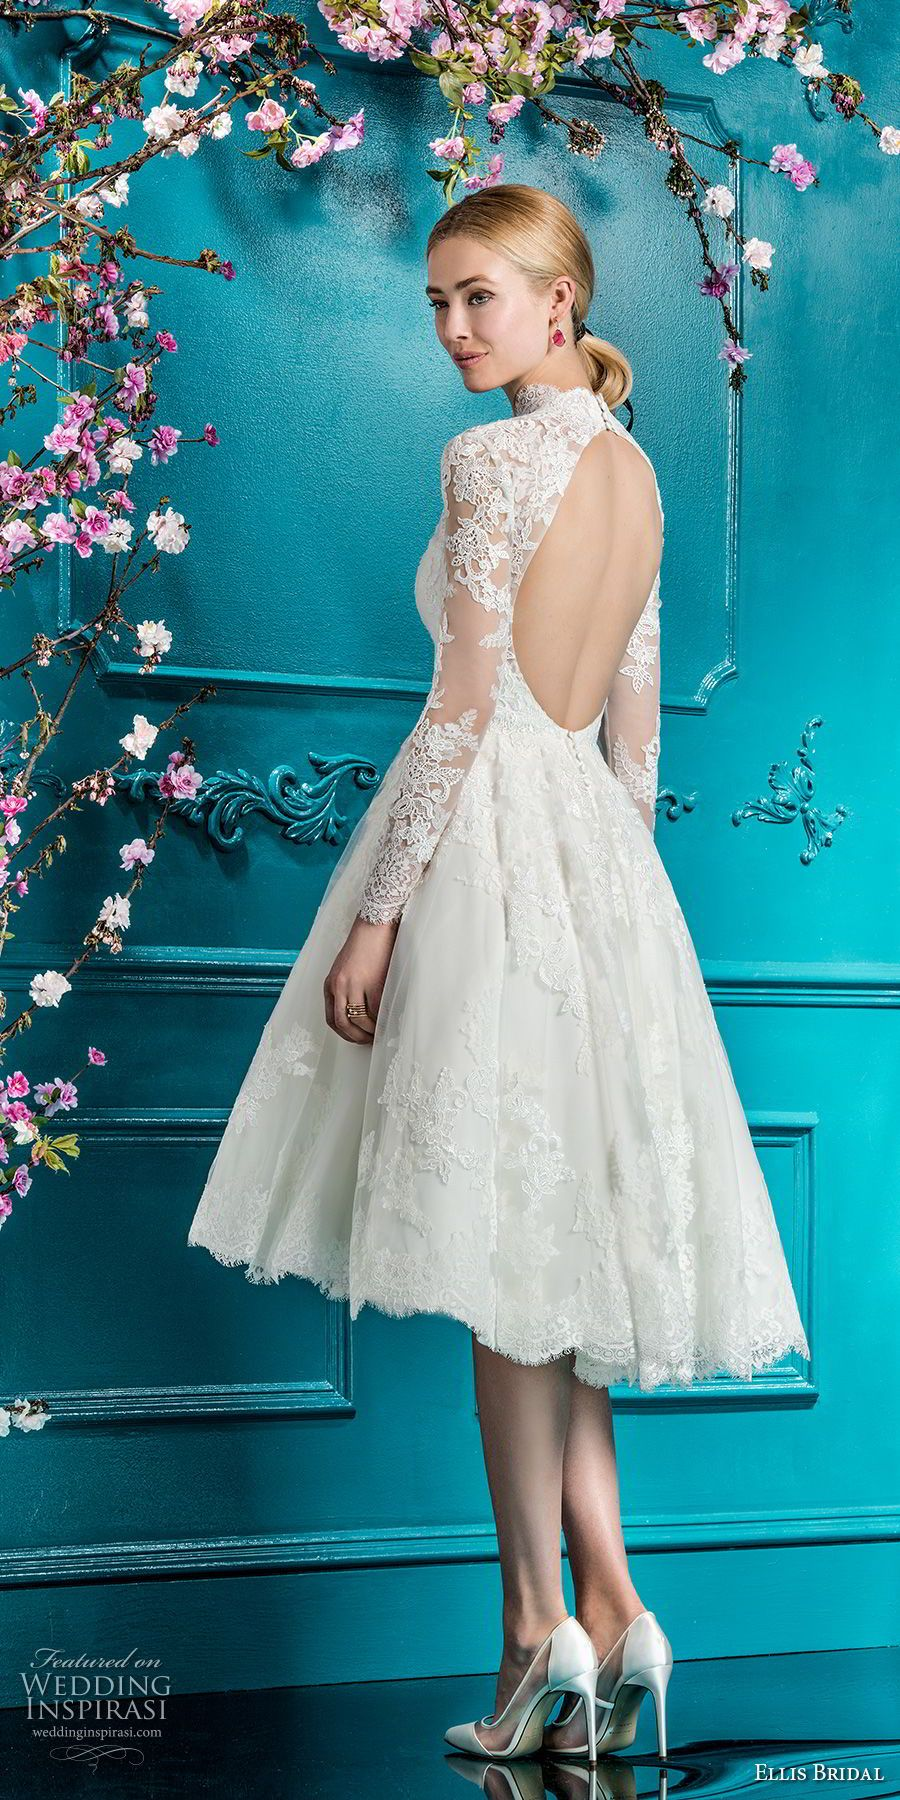 ellis bridals 2018 long sleeves illusion high neck sweetheart neckline full  embellishment romantic pretty knee length short wedding dress keyhole back  (4) ... d57f8dd596b